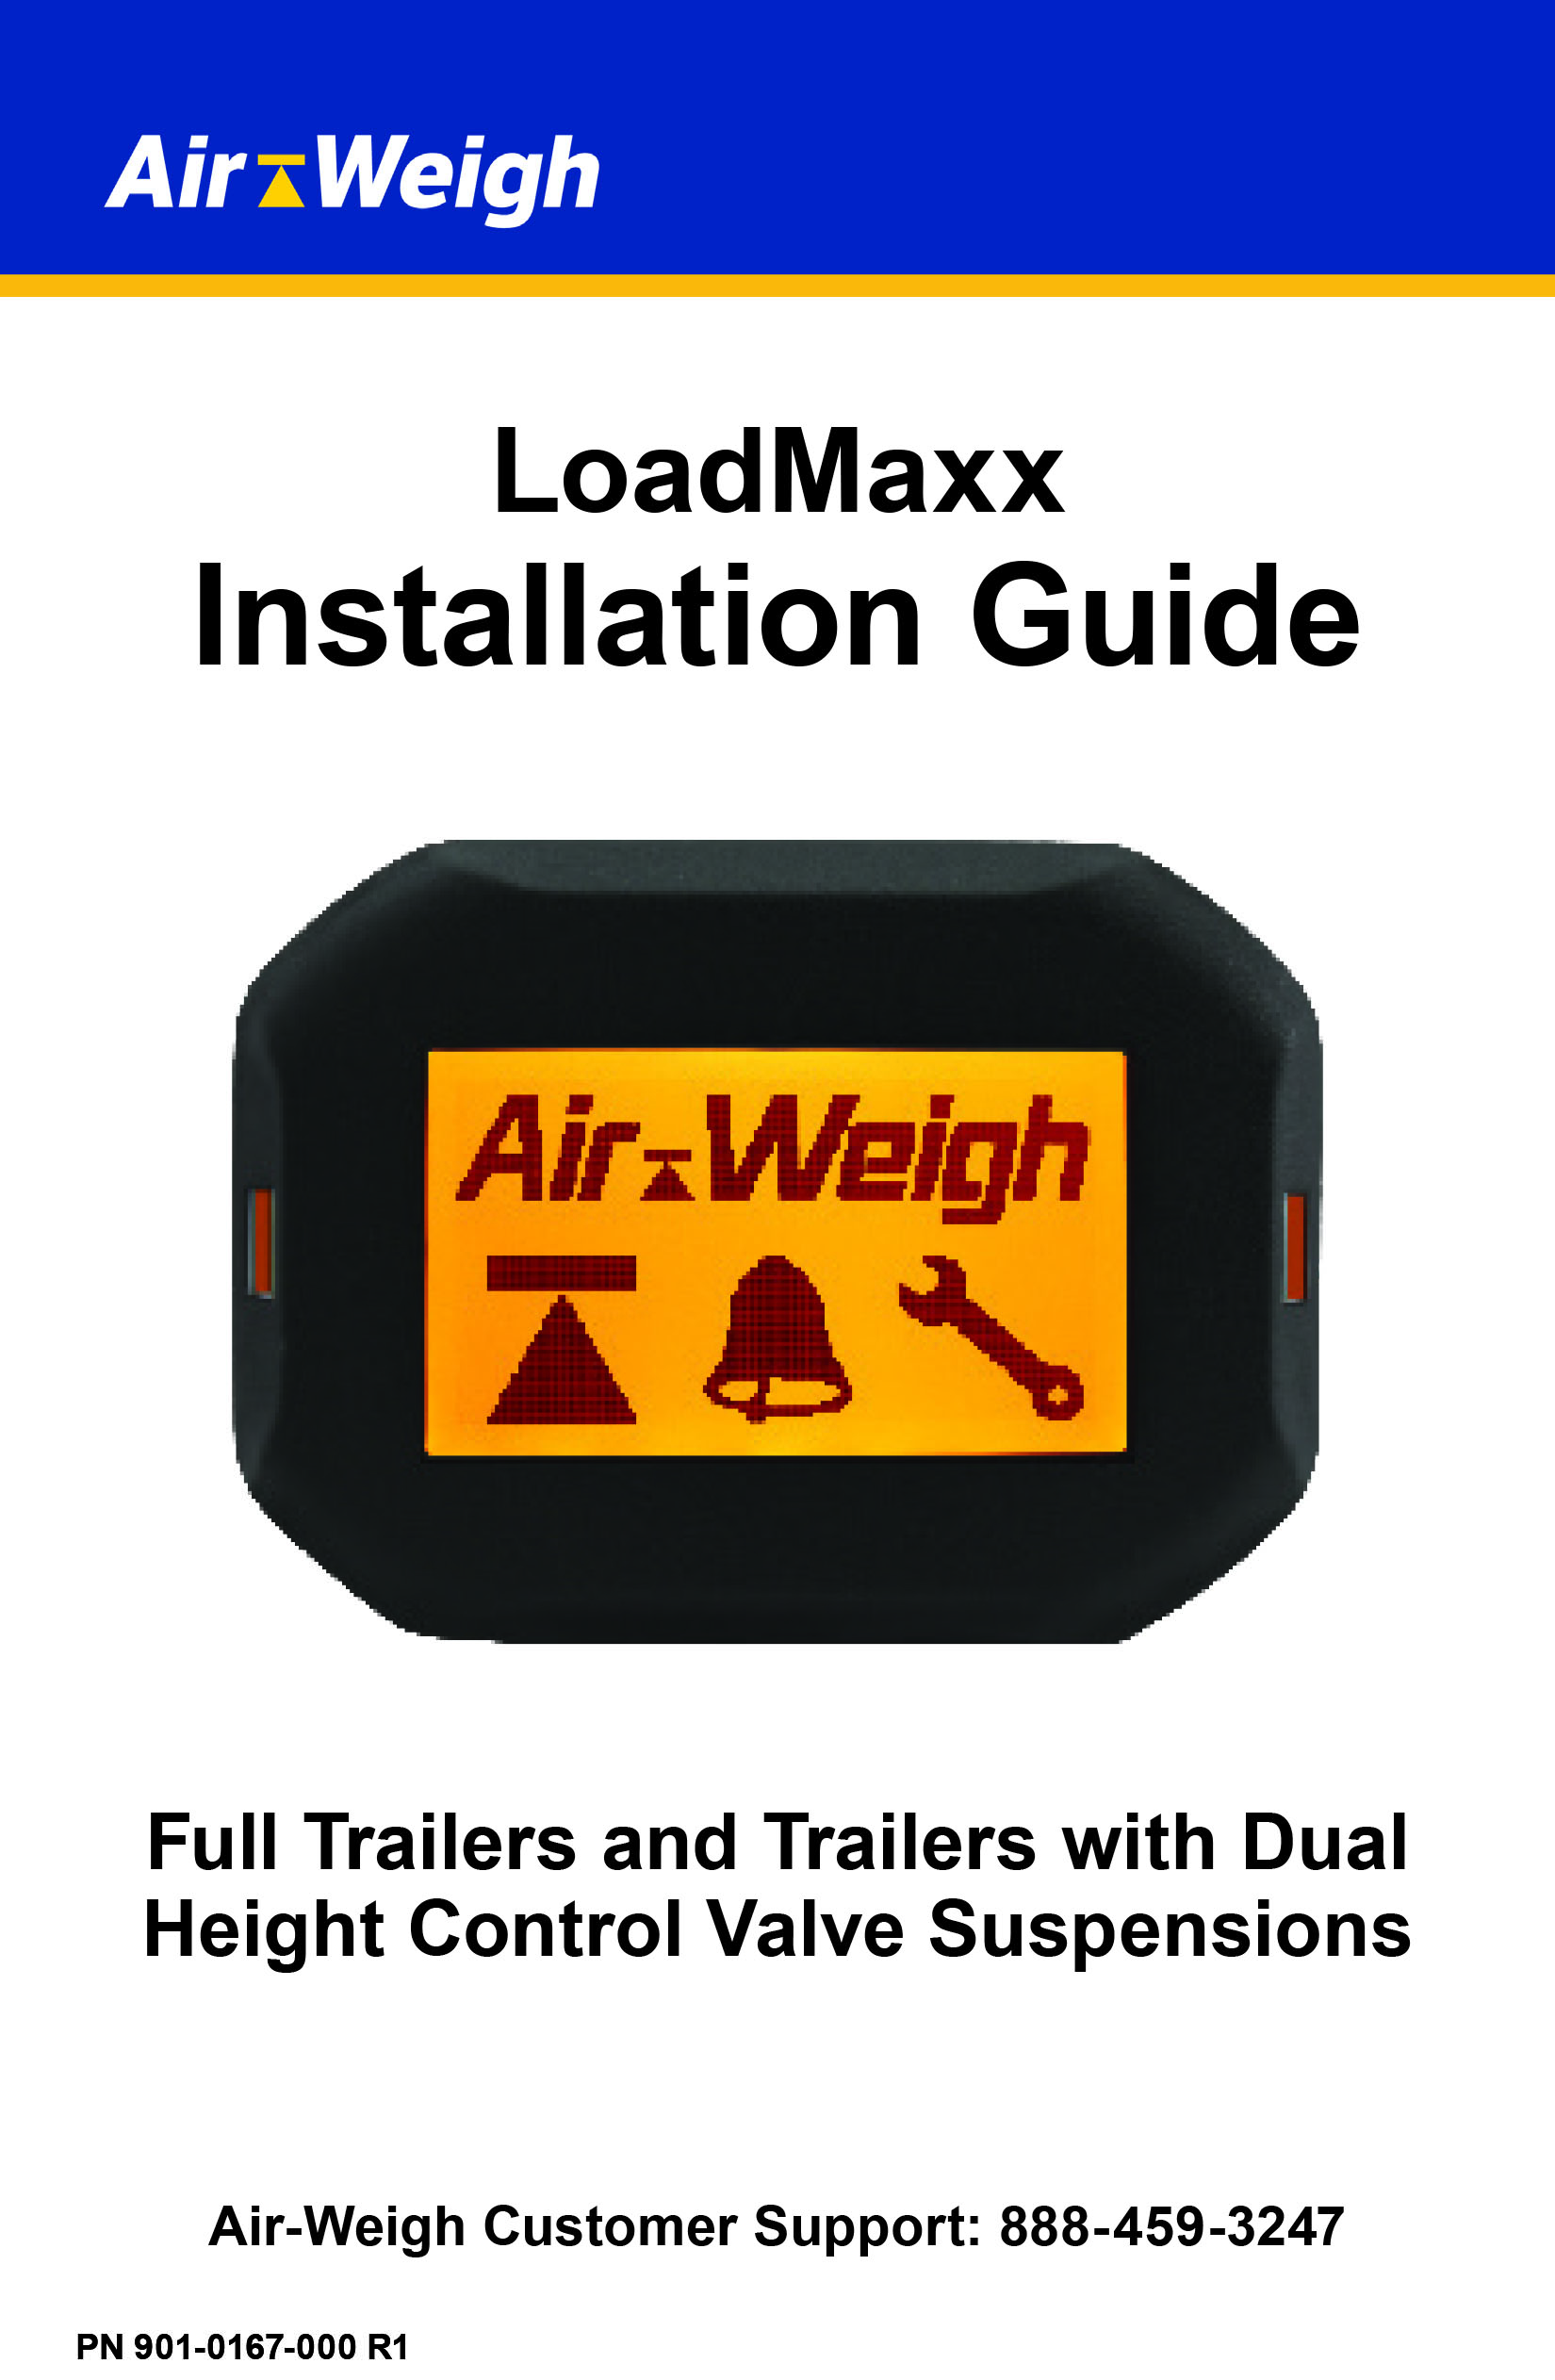 hight resolution of installation guide for full trailers and trailers with dual hcv suspensions